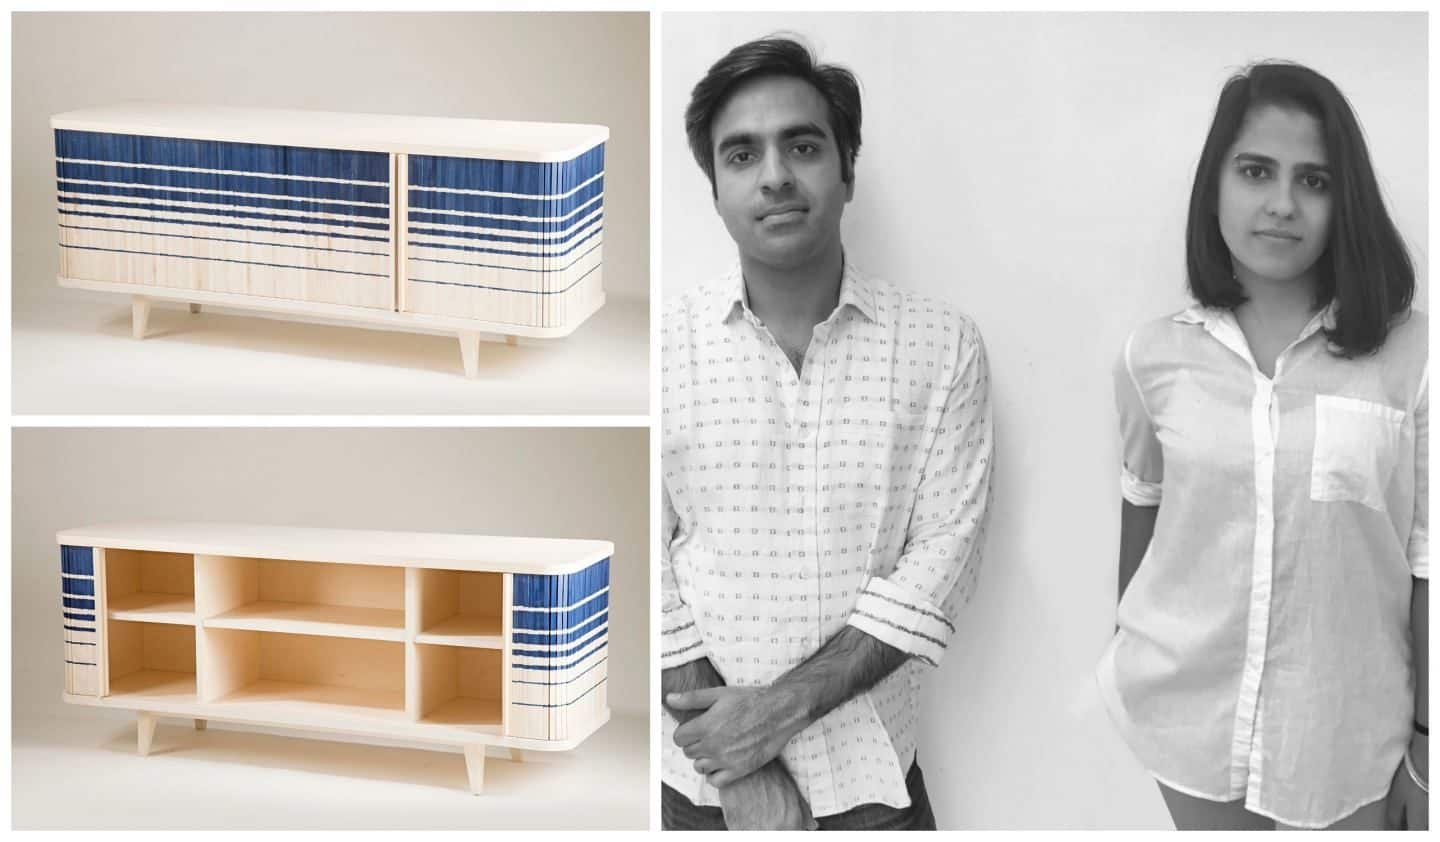 A storage unit that has a surface that has been inspired by Ikat fabrics designed by Indo-Manan Narang and Urvi Sharma from India. It was presented at Pure Talents at Imm Cologne 2019